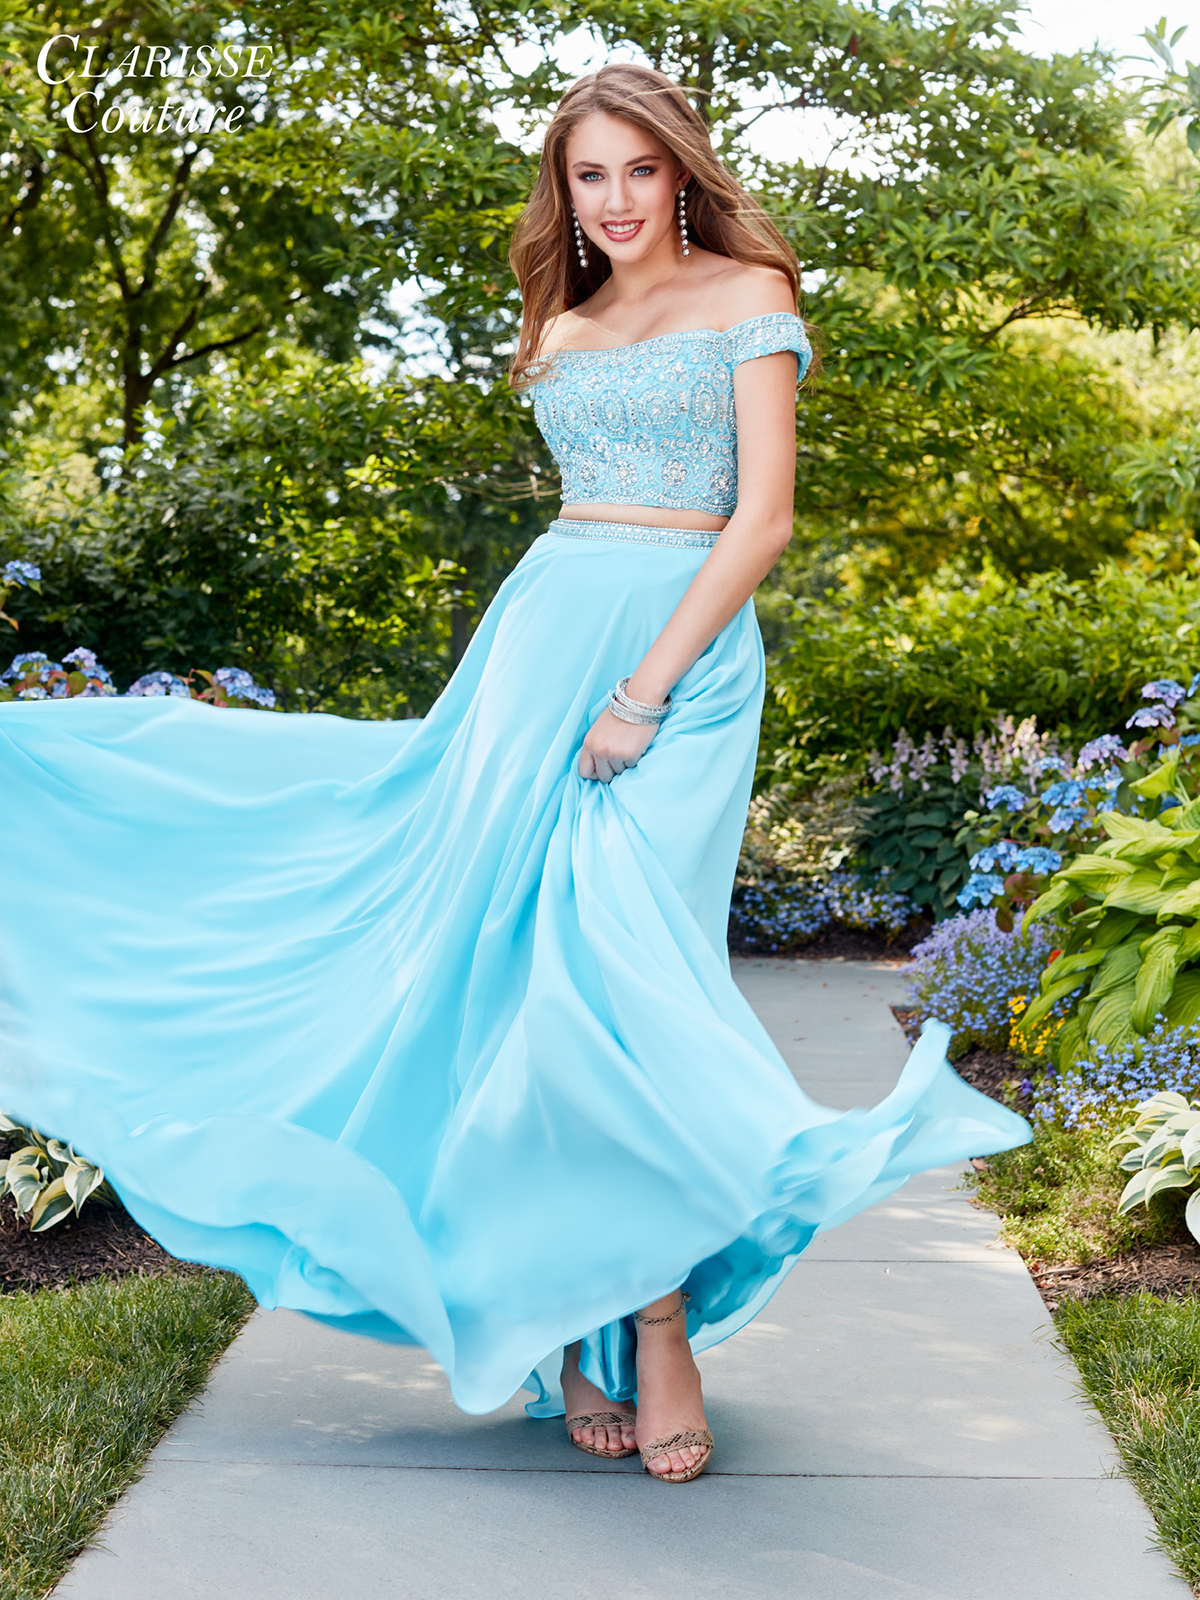 A-line Dresses and Gowns - A-line Prom Dresses   Promgirl.net